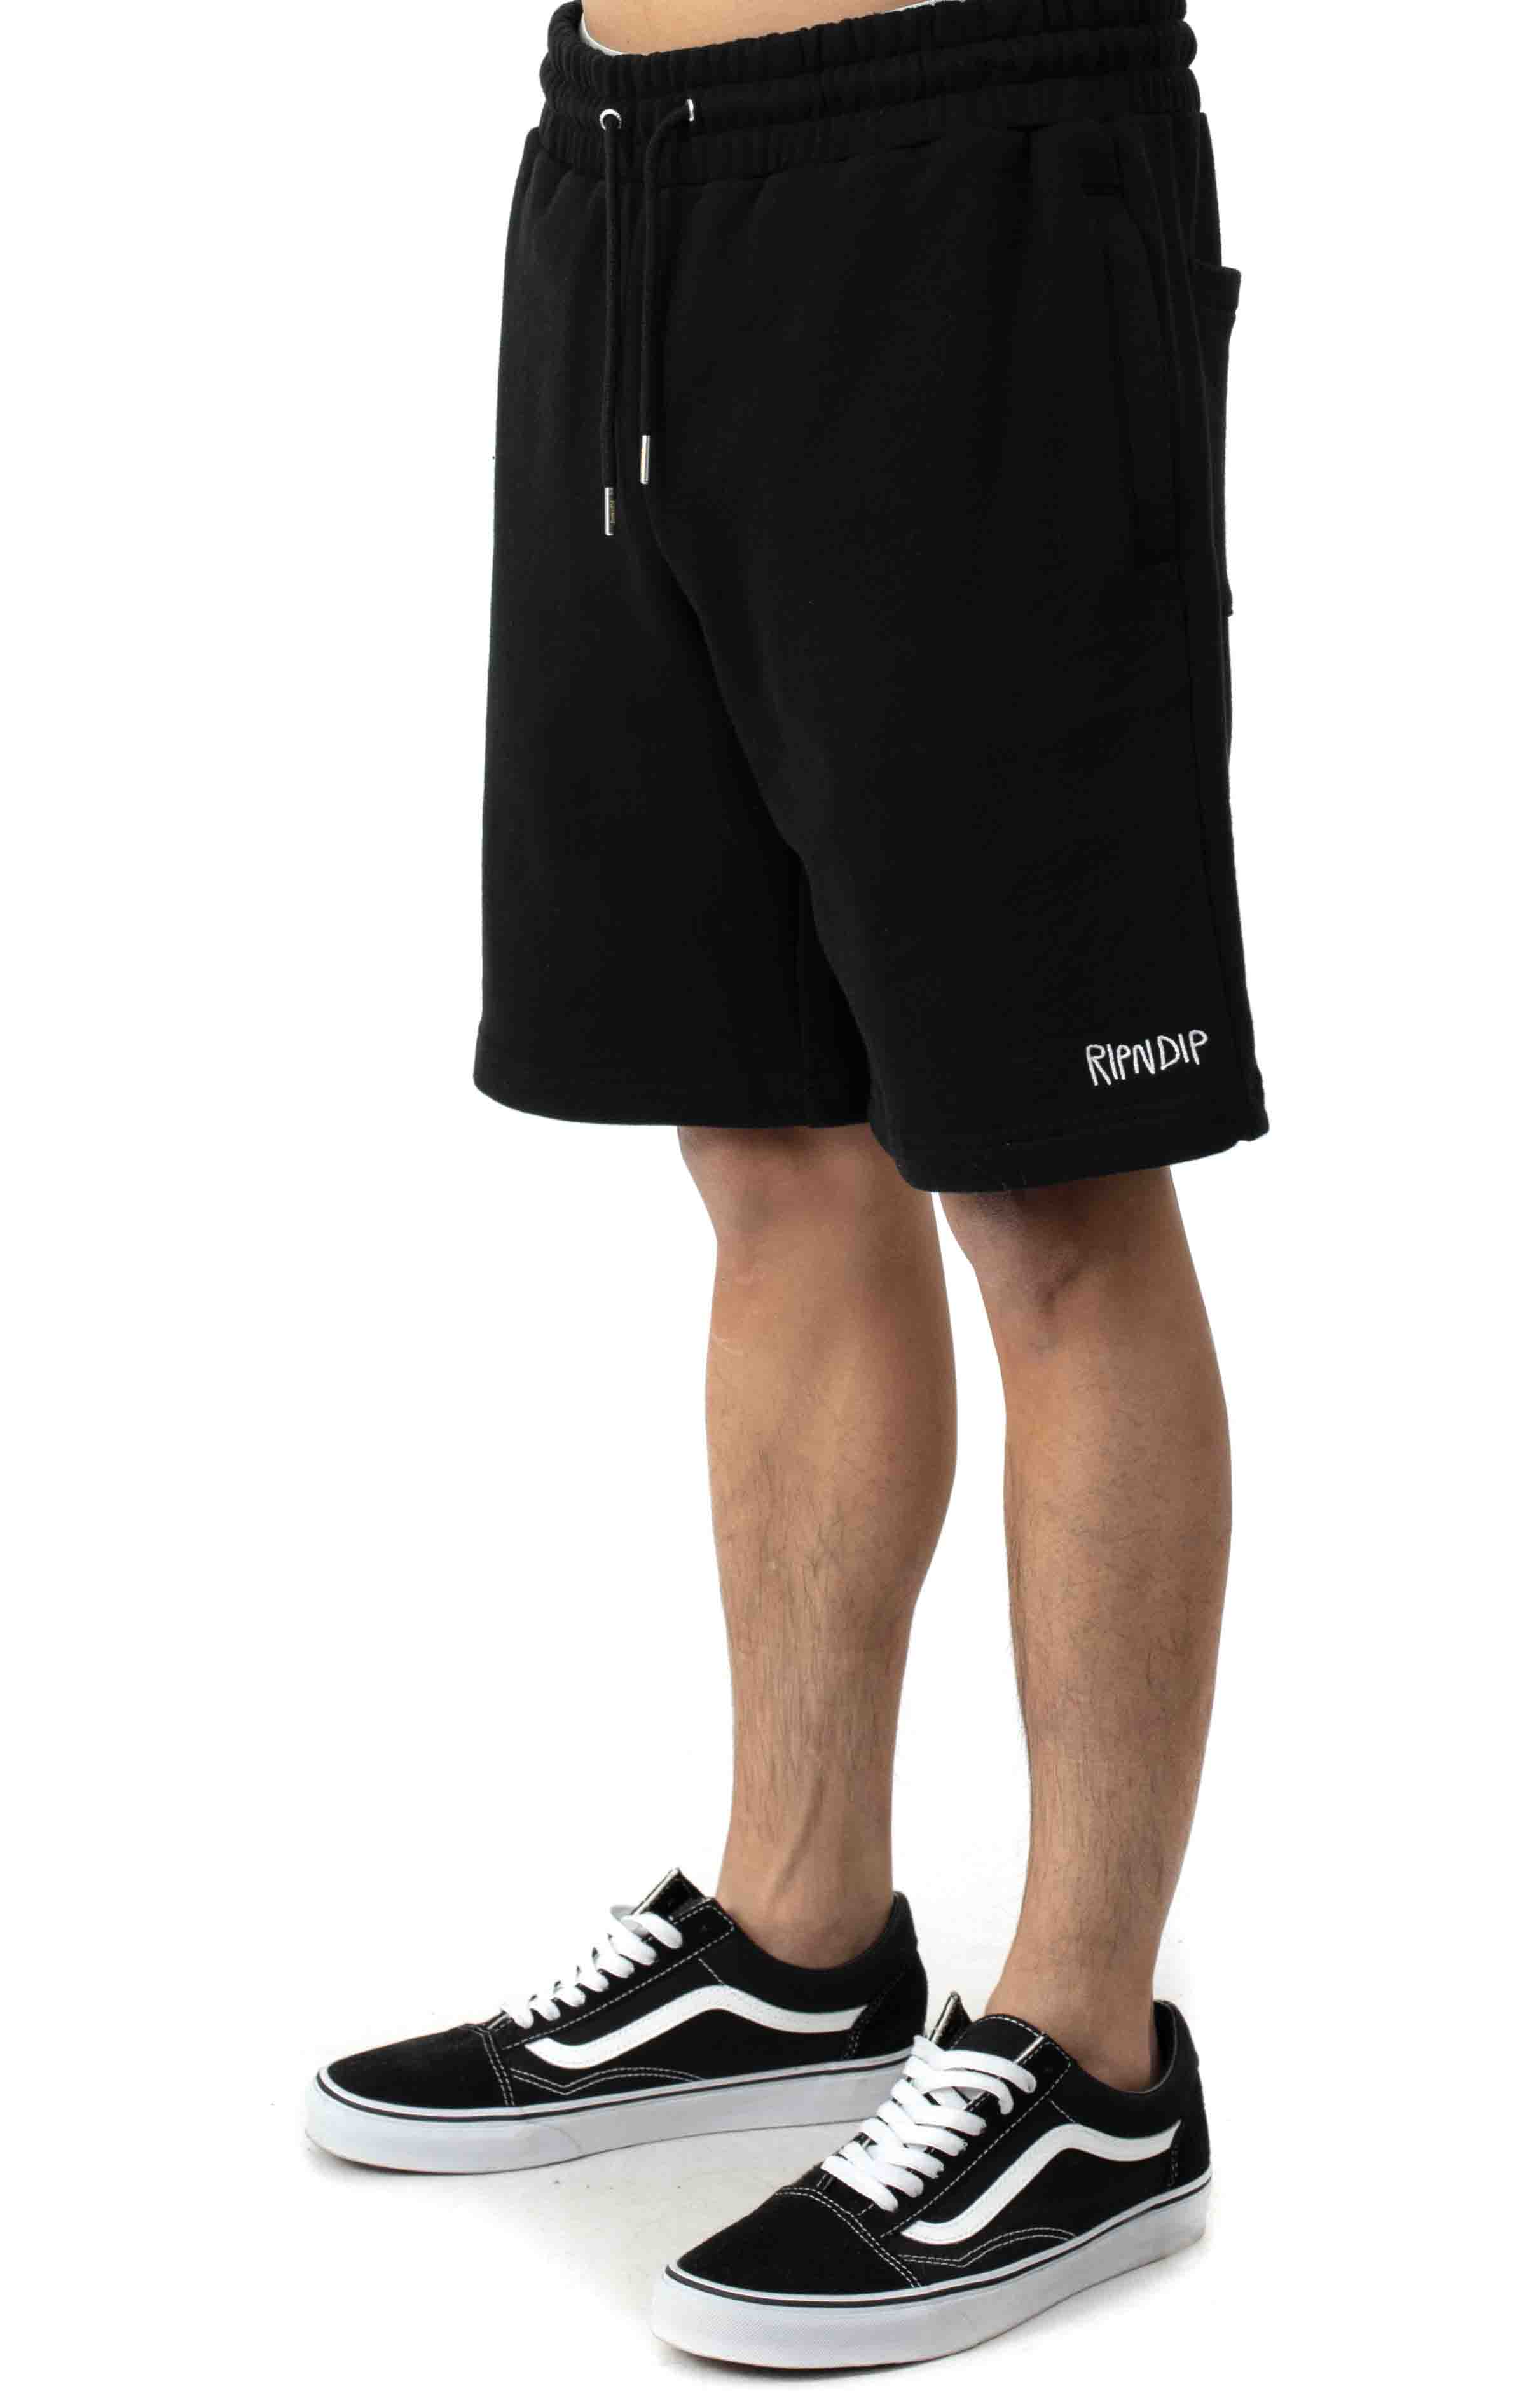 Peeking Nerm Sweat Shorts - Black 3